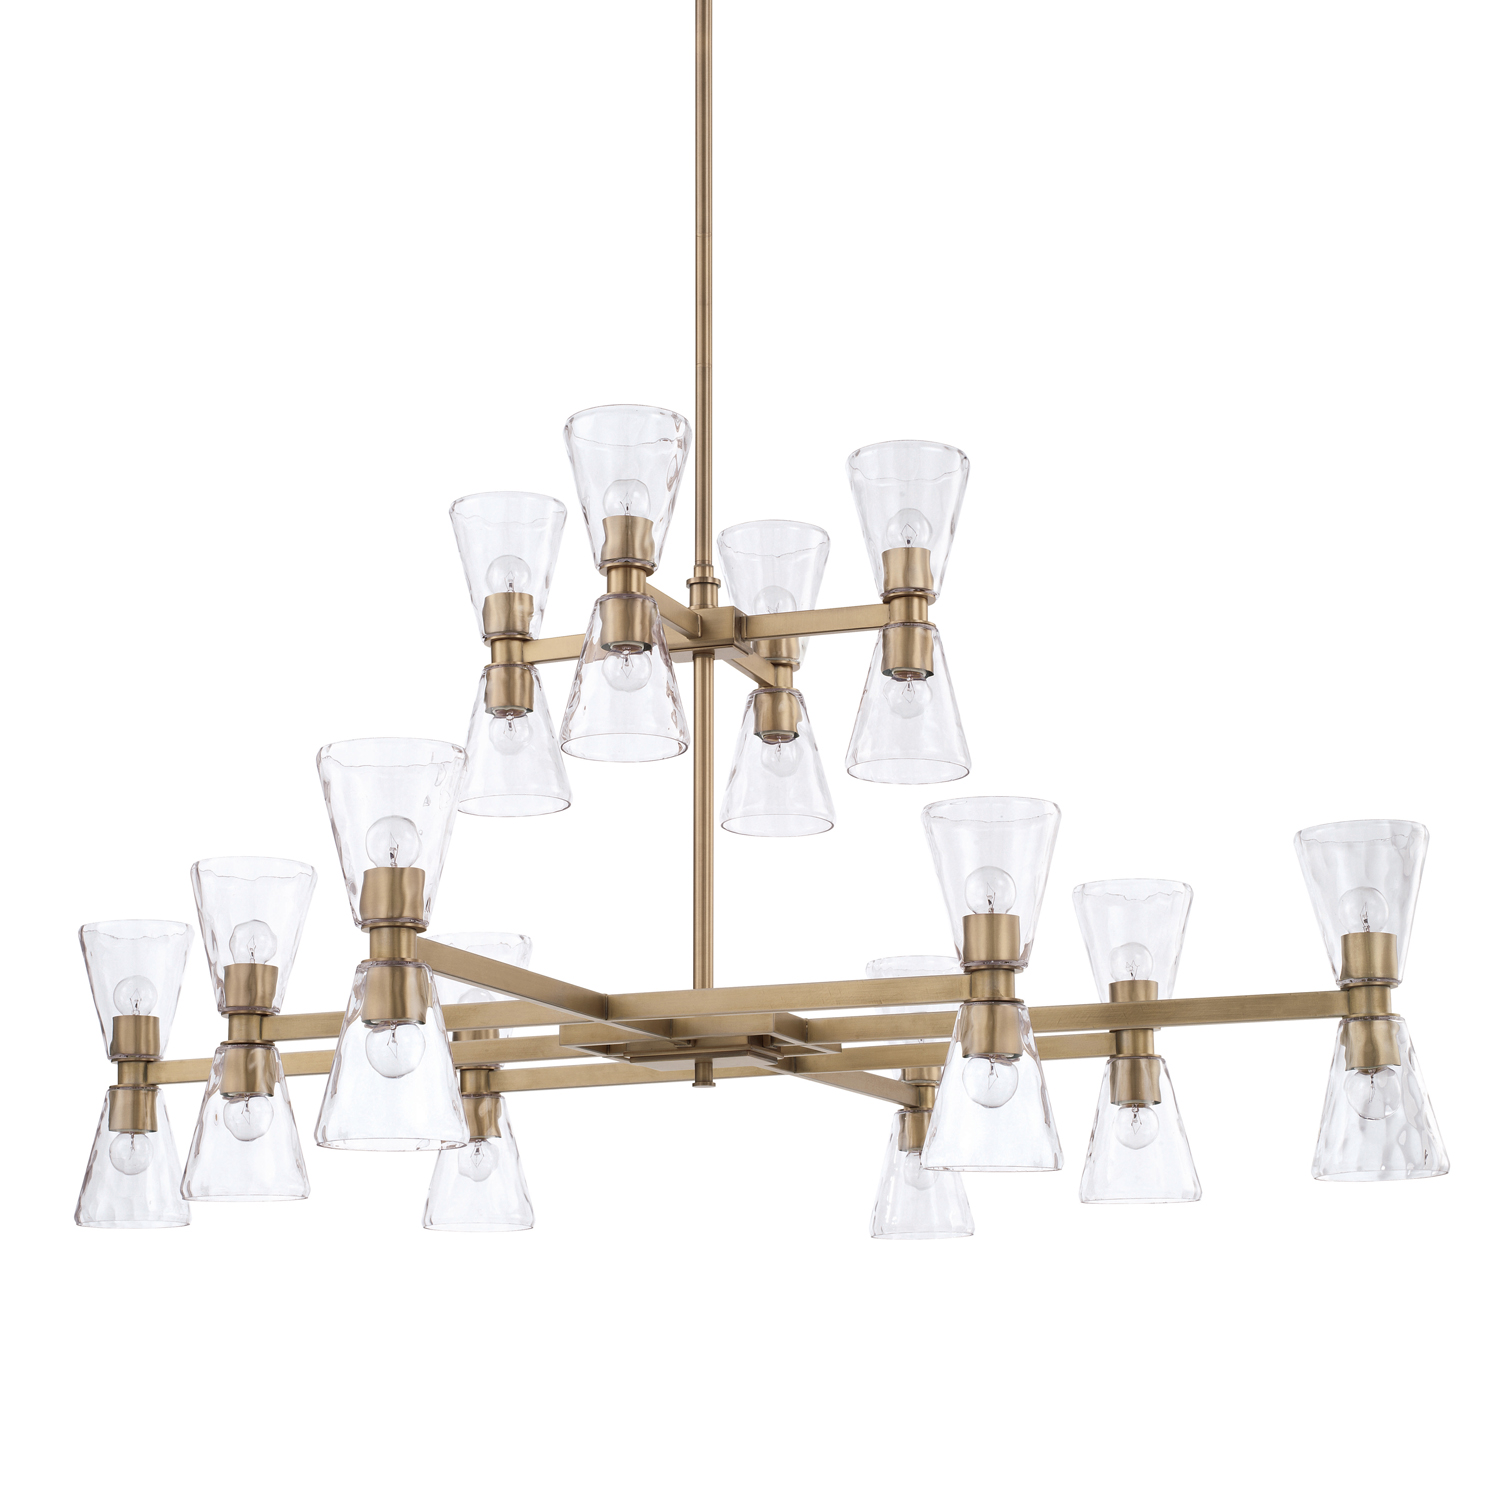 24 Light Chandelier from the Lyra collection by Capital Lighting 427502AD 456